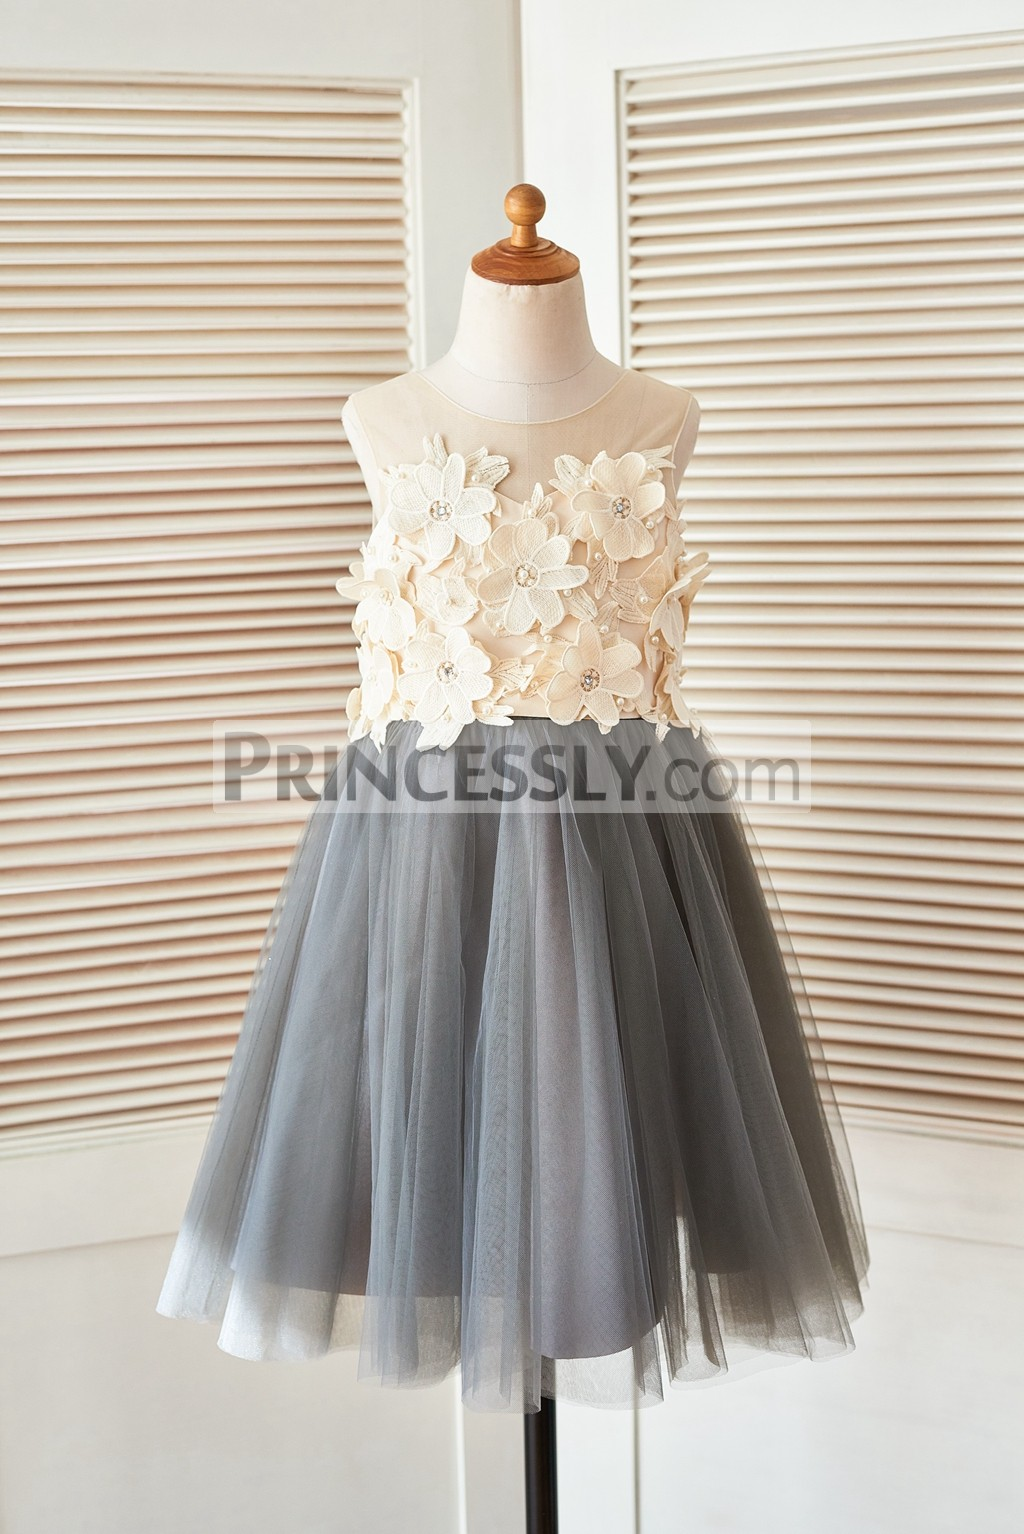 Sheer Illusion Neck Gray Tulle Flower Girl Dress with ...